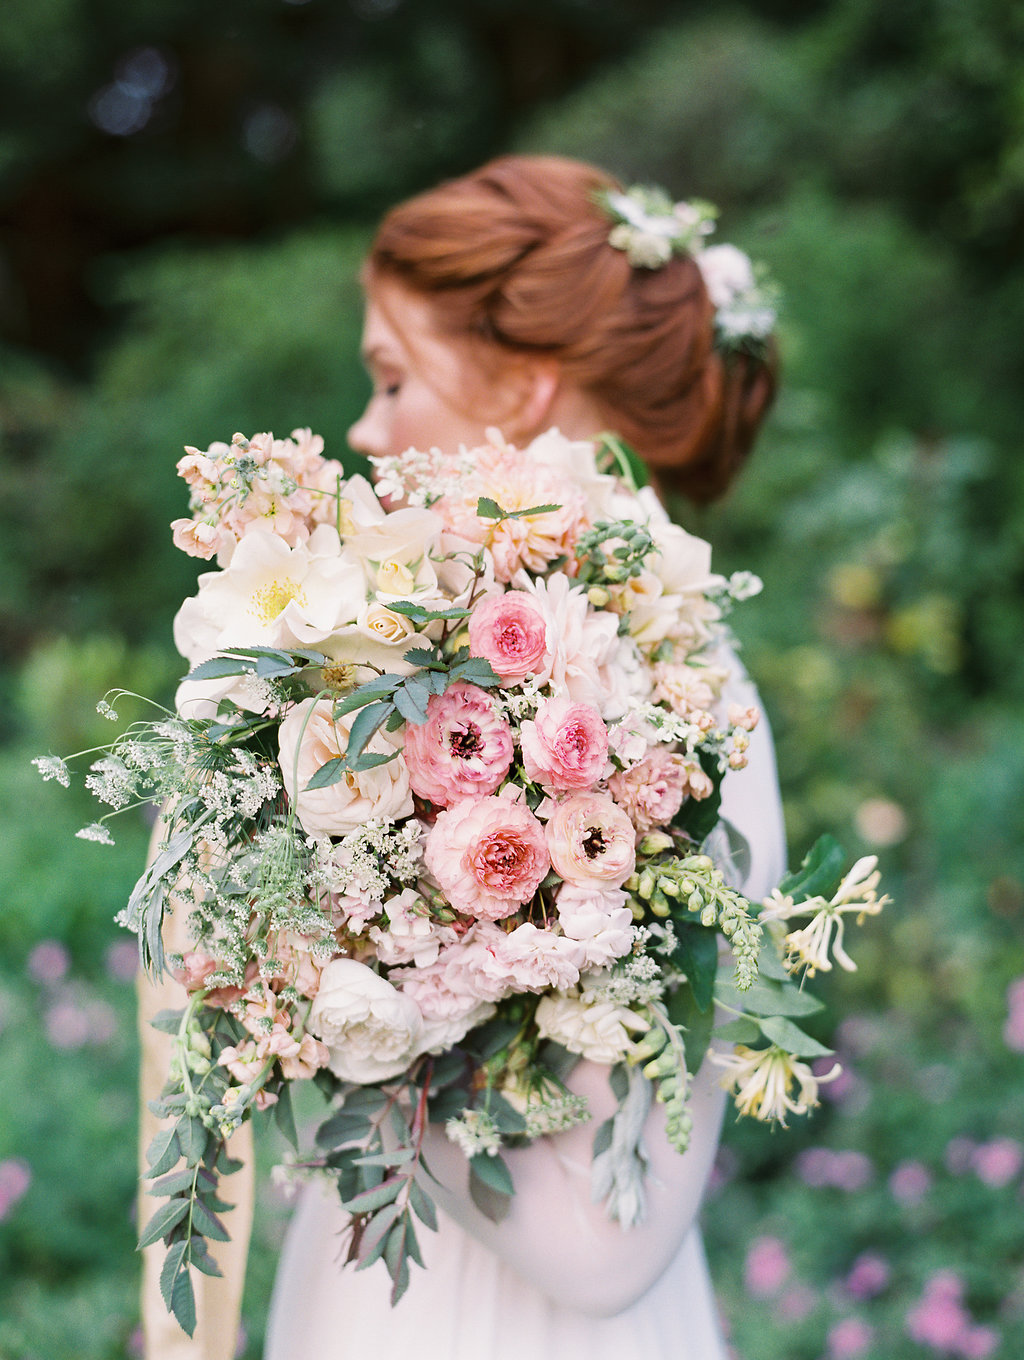 wedding bouquets with loose flowers - photo by As Ever Photography http://ruffledblog.com/the-secret-garden-inspired-wedding-in-ireland